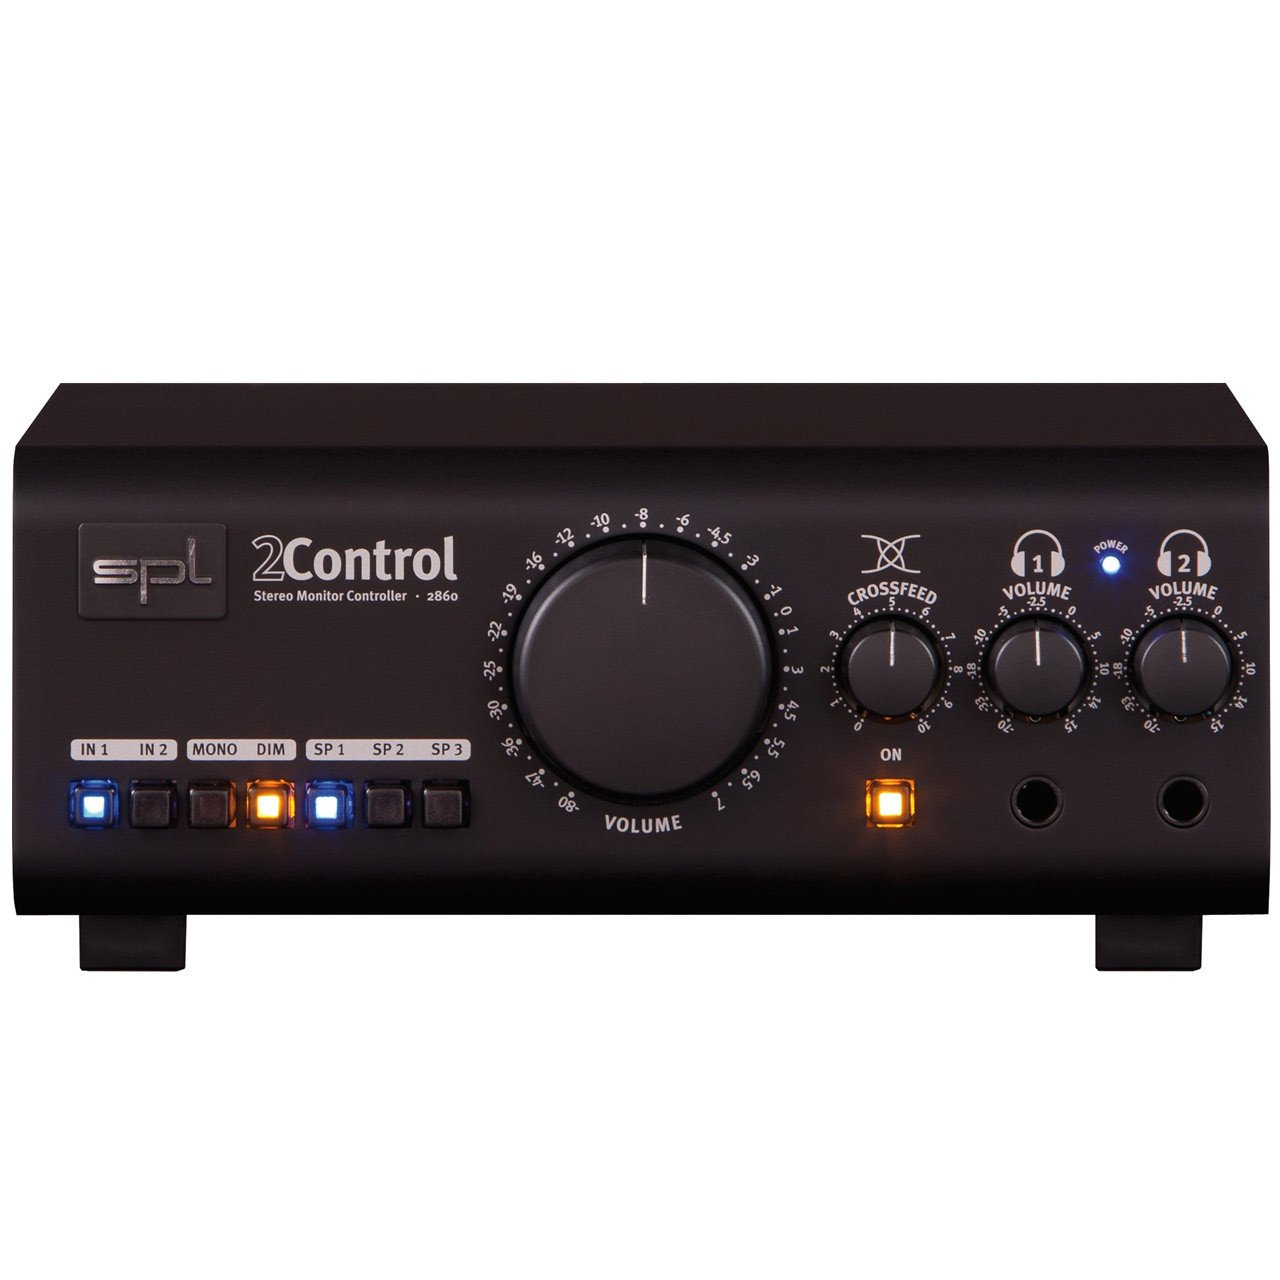 SPL 2Control Dual High Quality Headphone Amp Controller